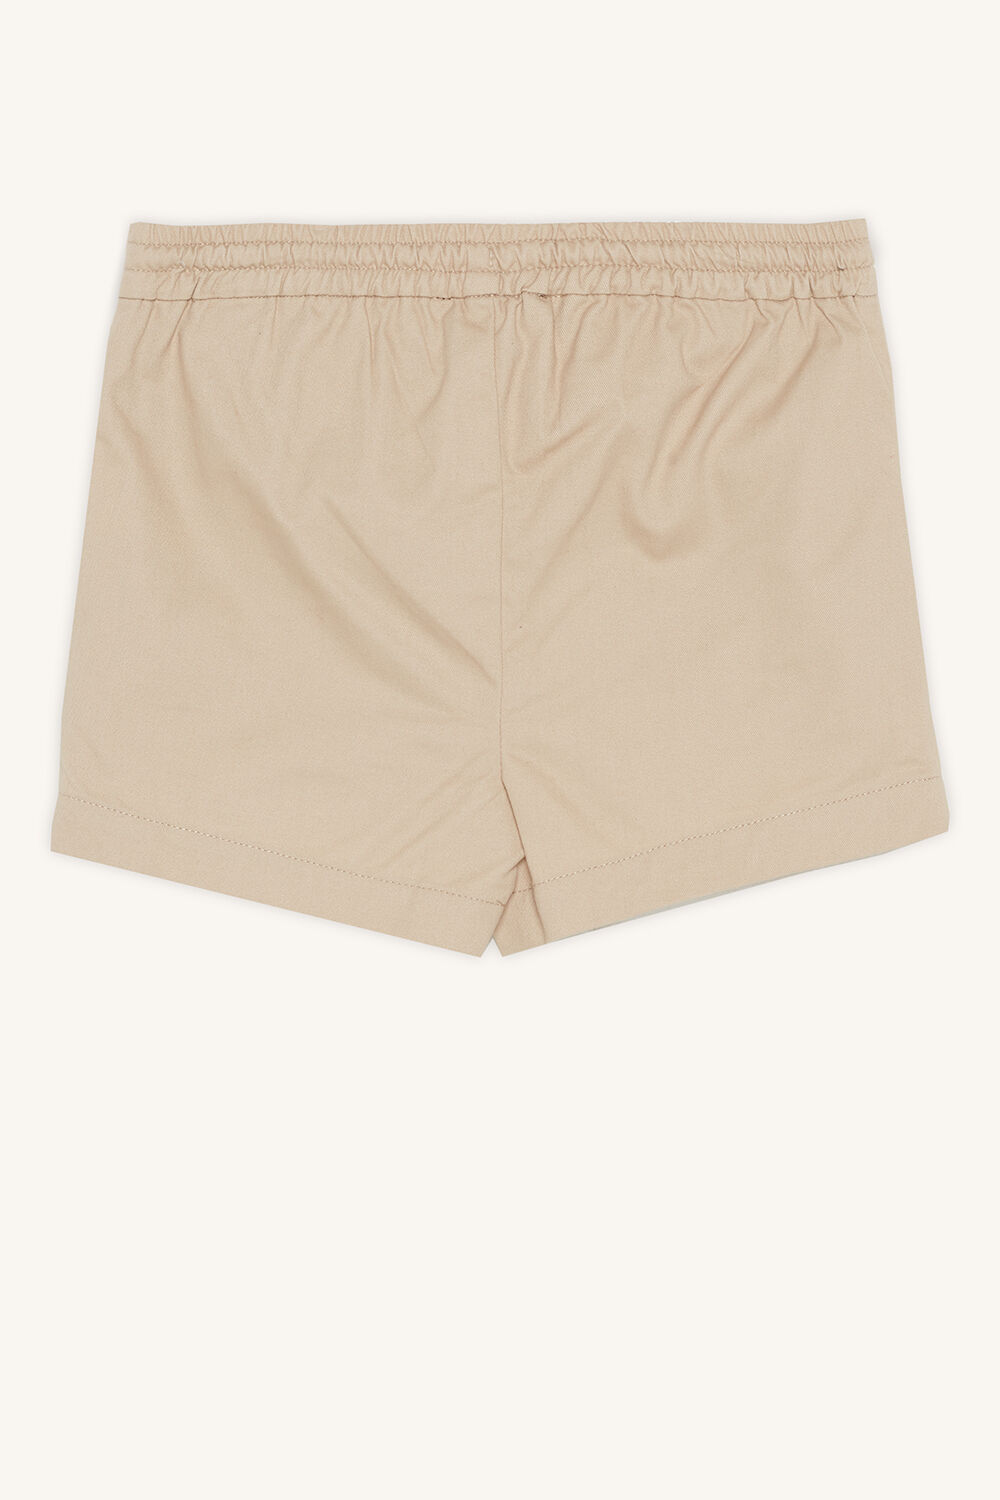 BABY BOY piped short in colour WHITECAP GRAY